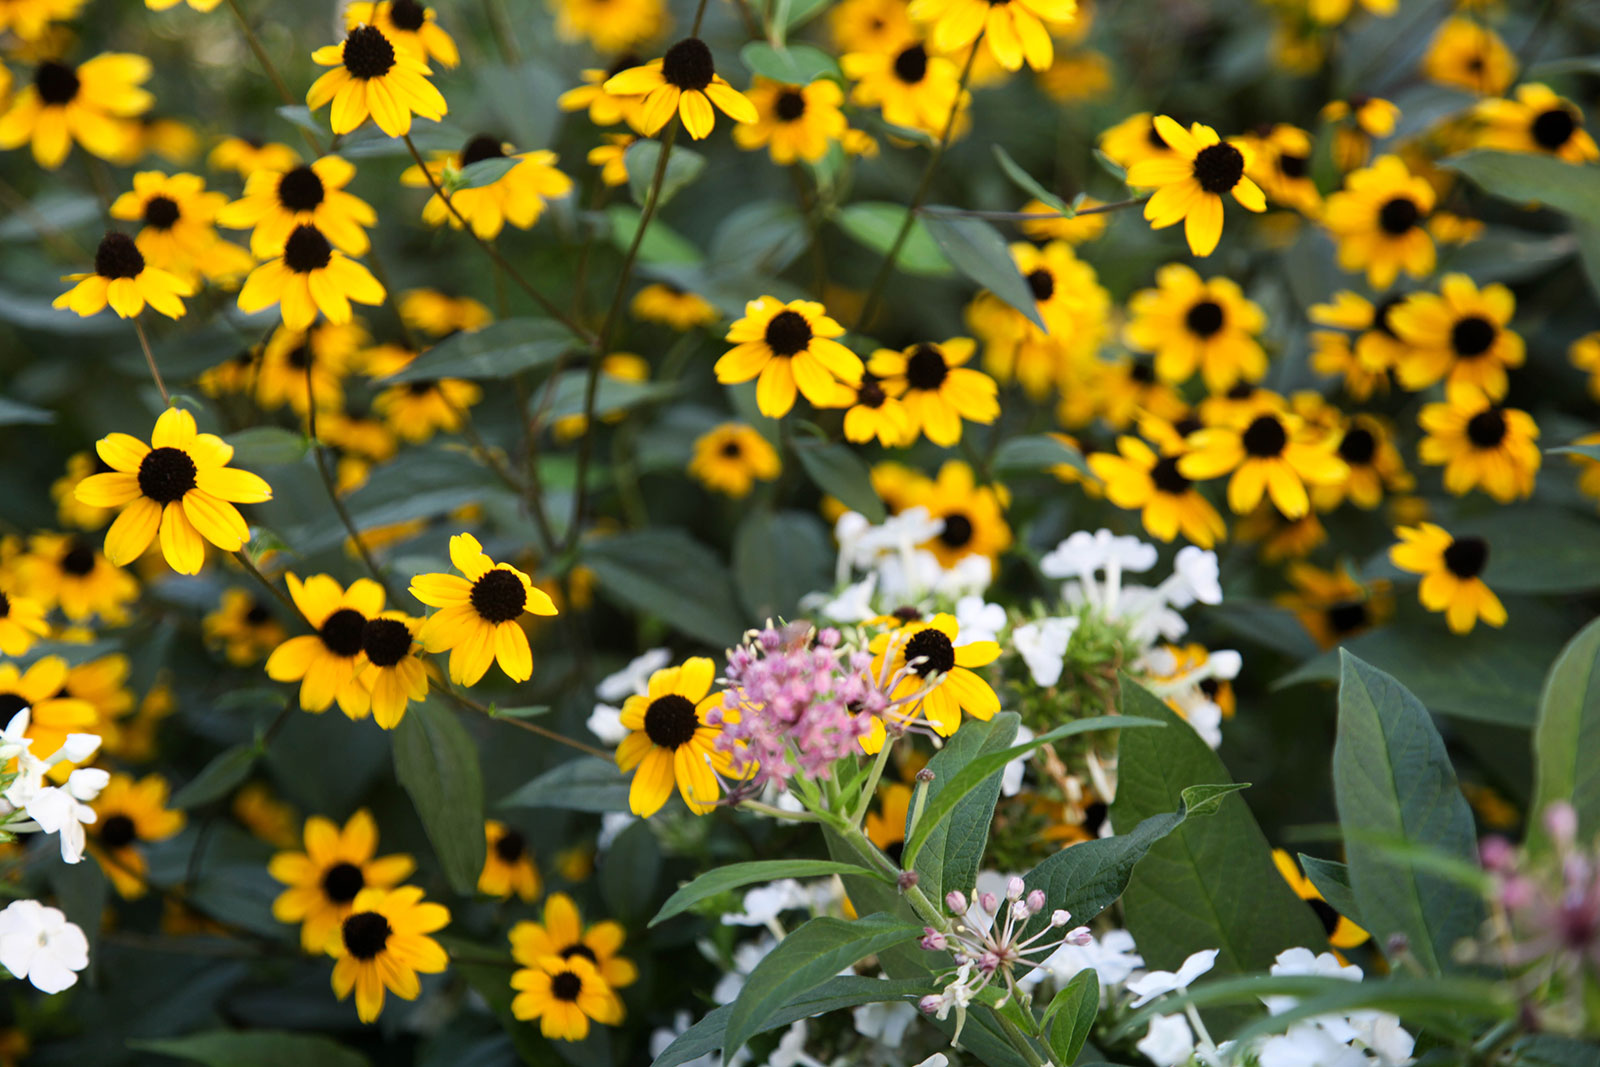 Black-eyed Susans in the garden